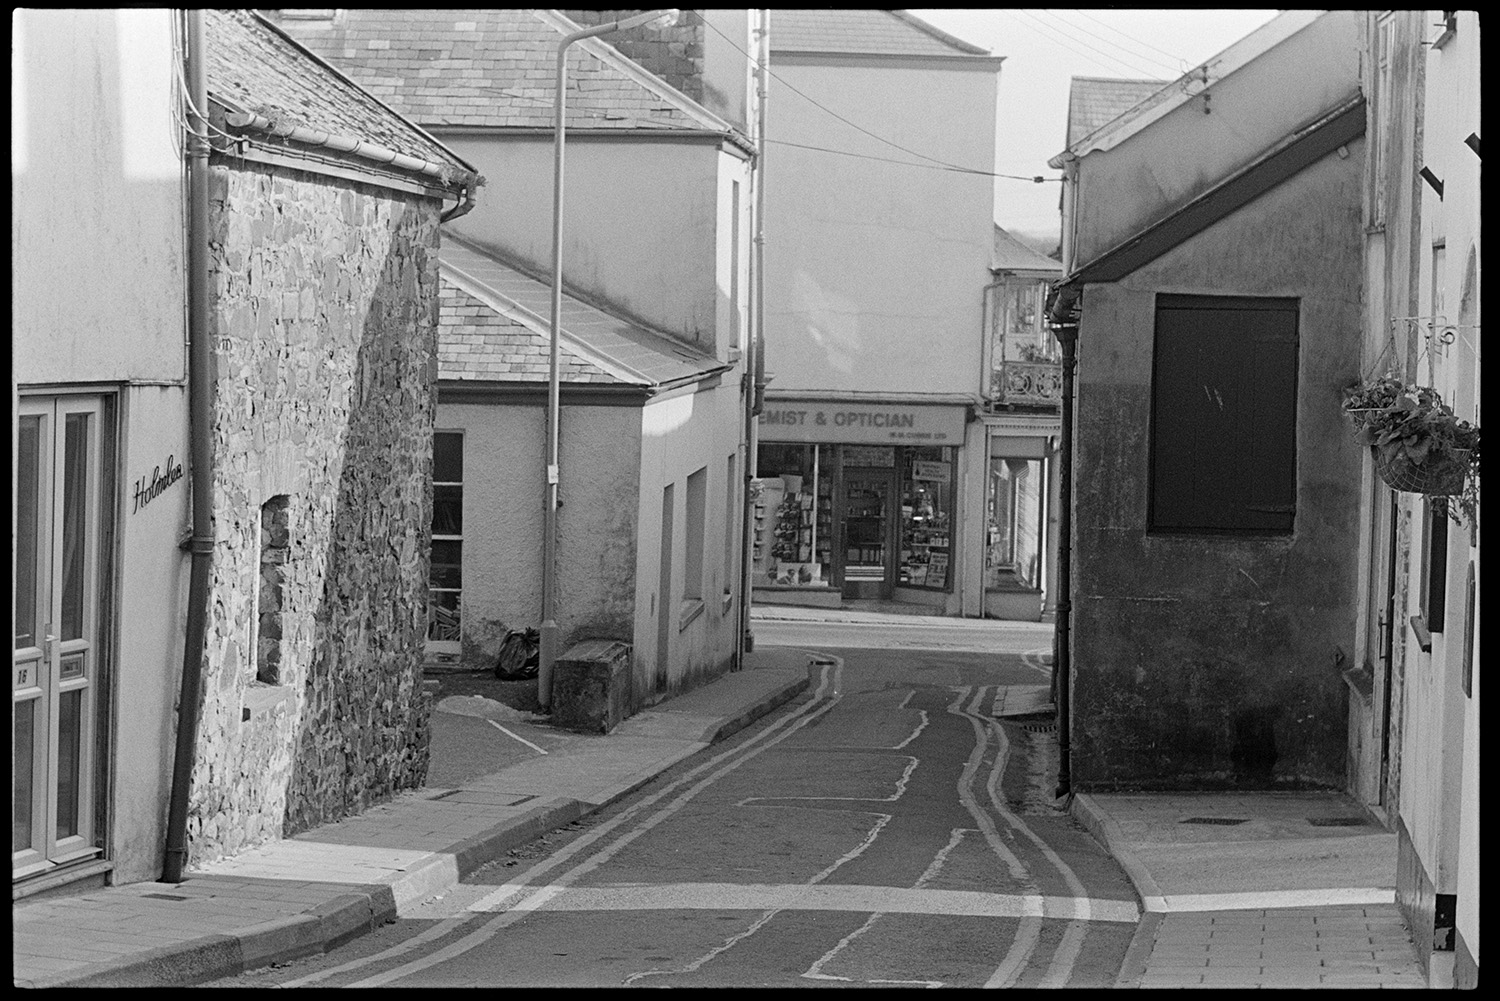 Street scenes. <br /> [A side street in South Molton. The shop front of a chemist and optician can be seen opposite the road junction at the end of the street.]